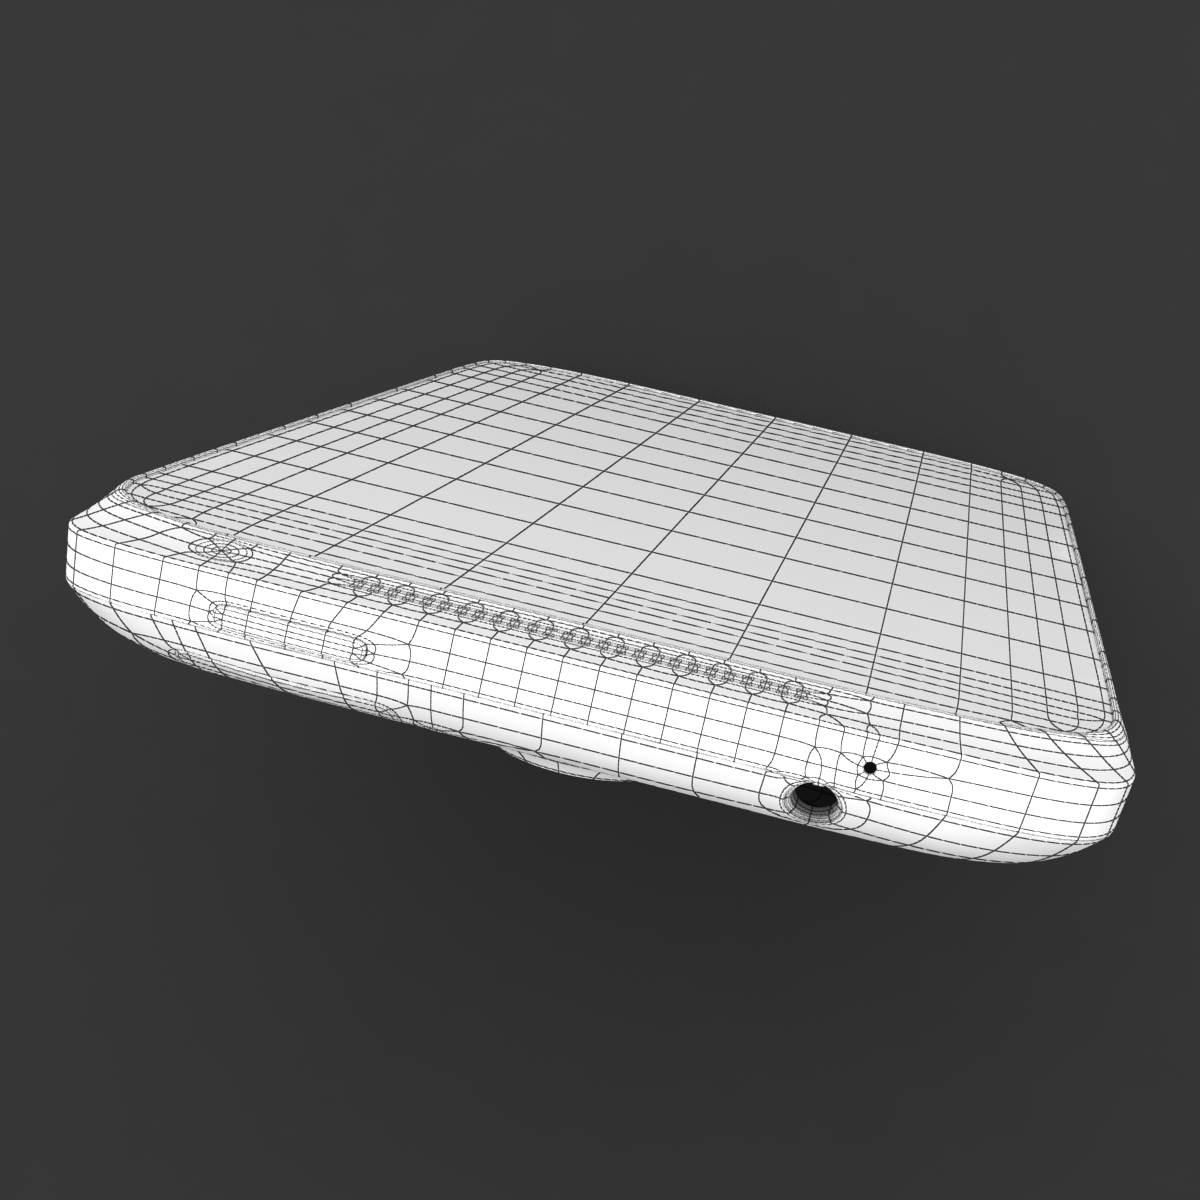 htc one x+ black and white 3d model 3ds max fbx c4d lwo obj 151482